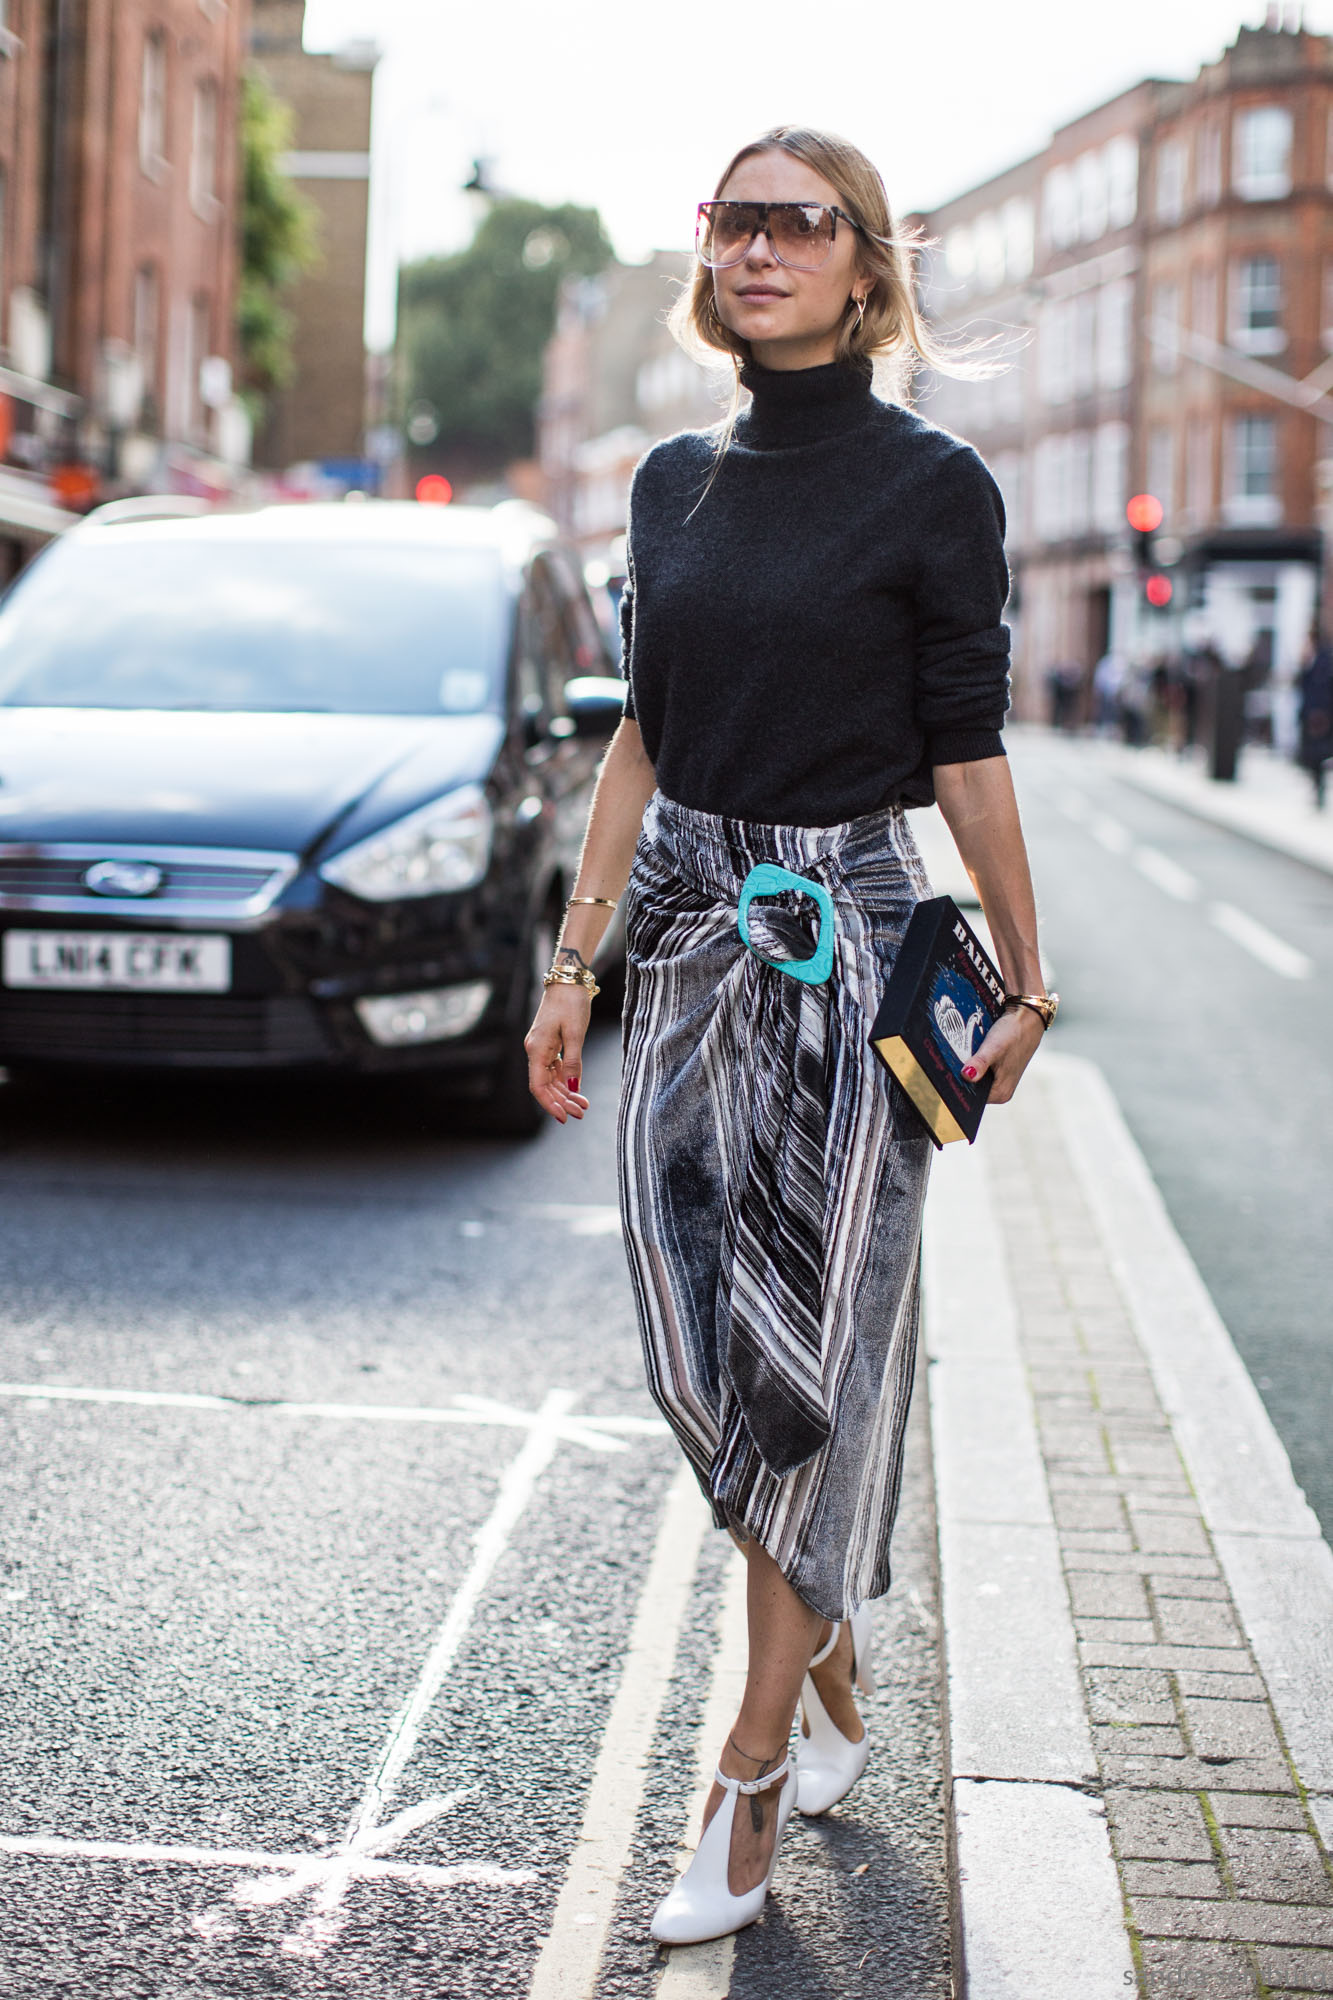 London_SS2016_day2_sandrasemburg-20150919-2661